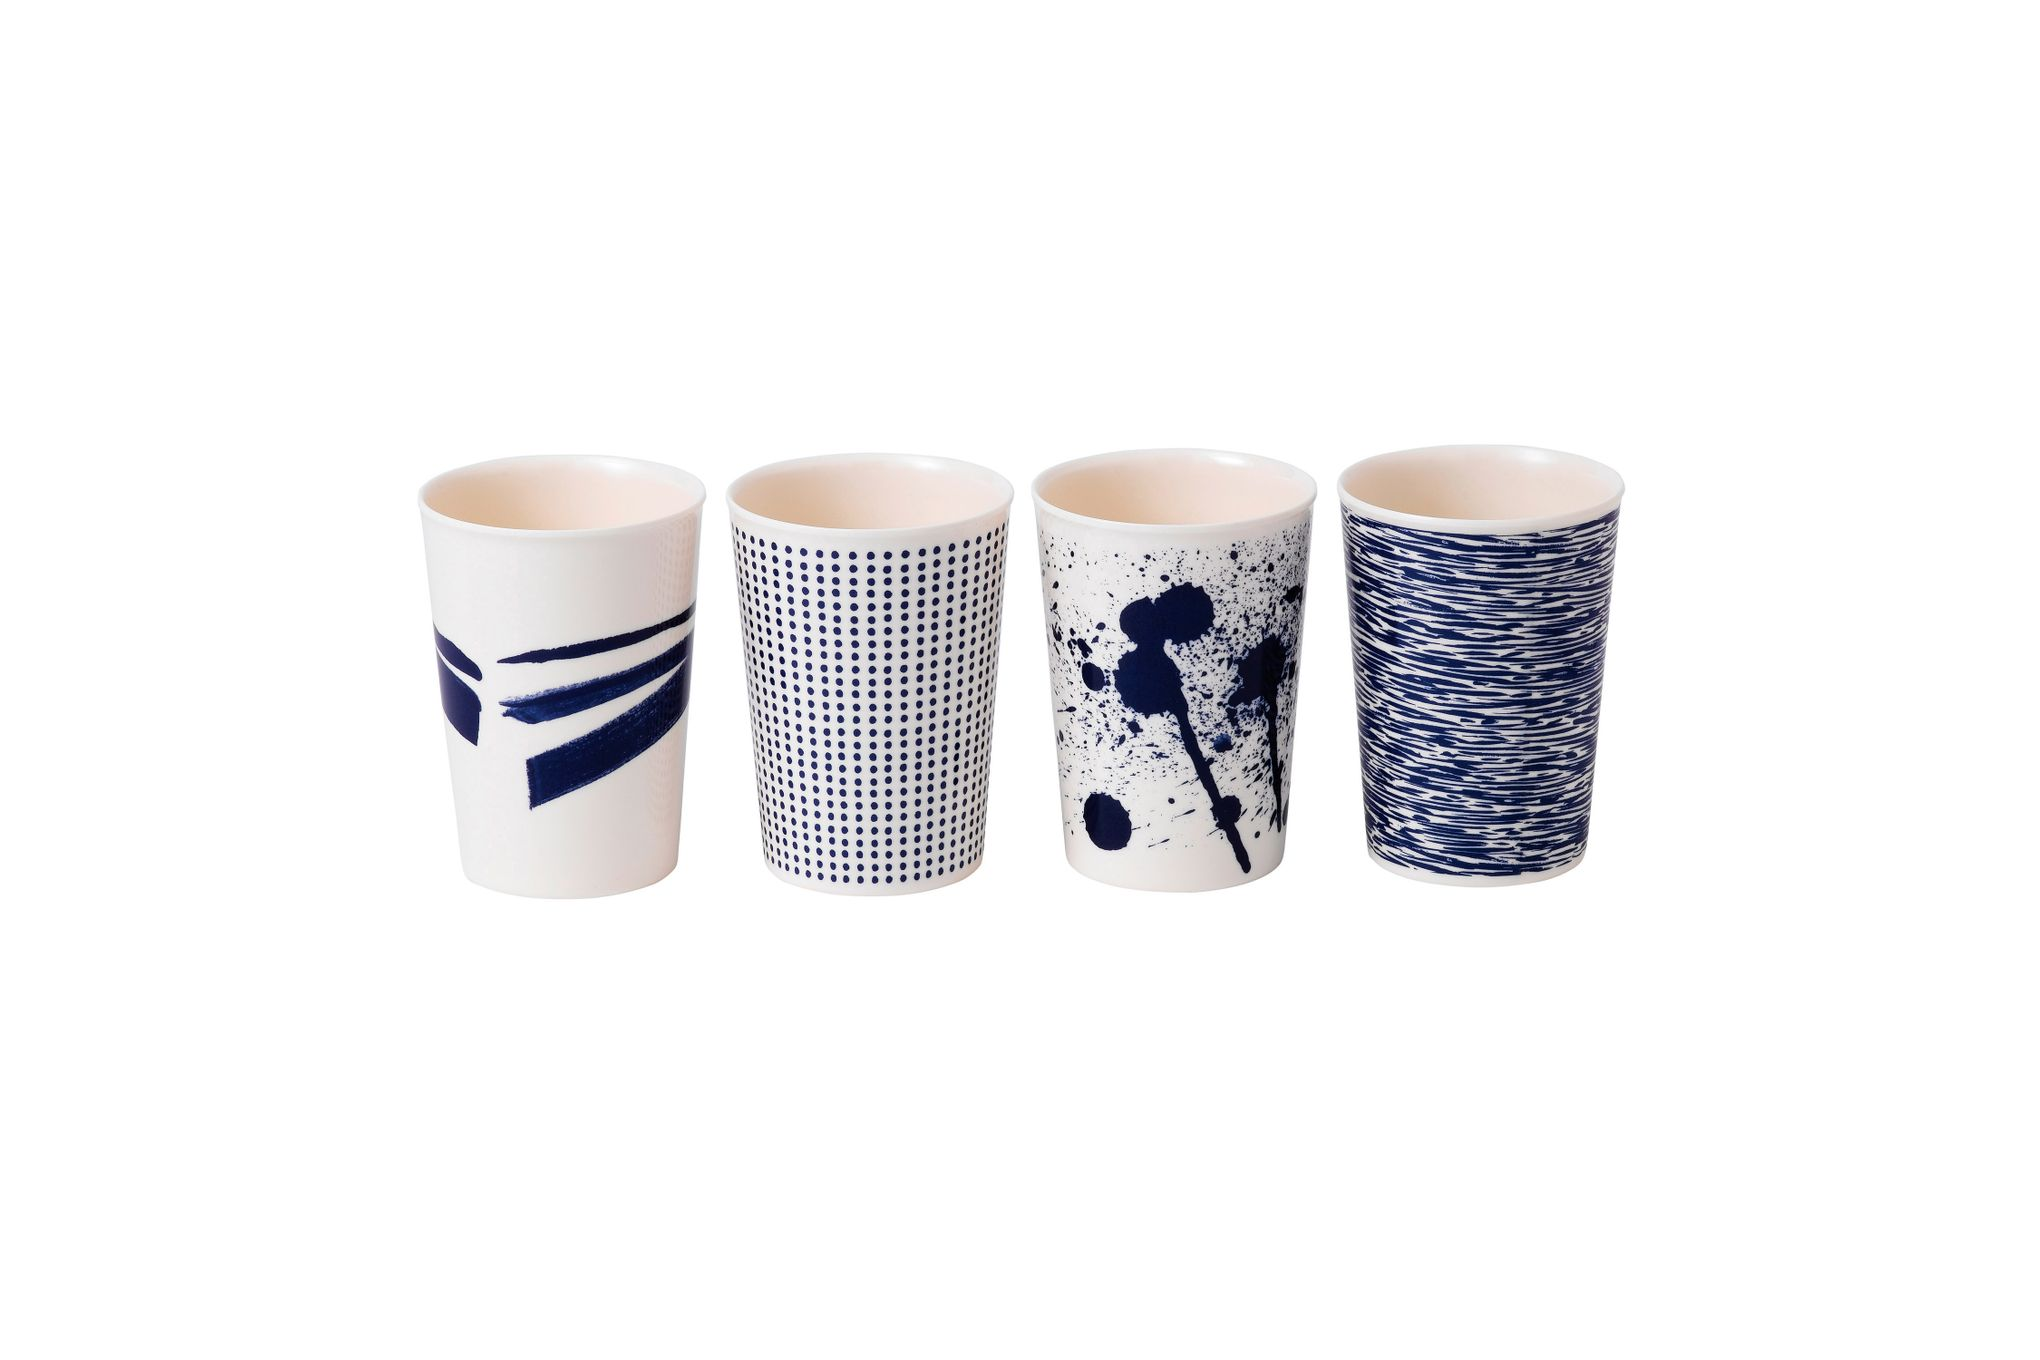 Royal Doulton Outdoor Living - Pacific Set of 4 Tumblers Melamine 300ml thumb 1